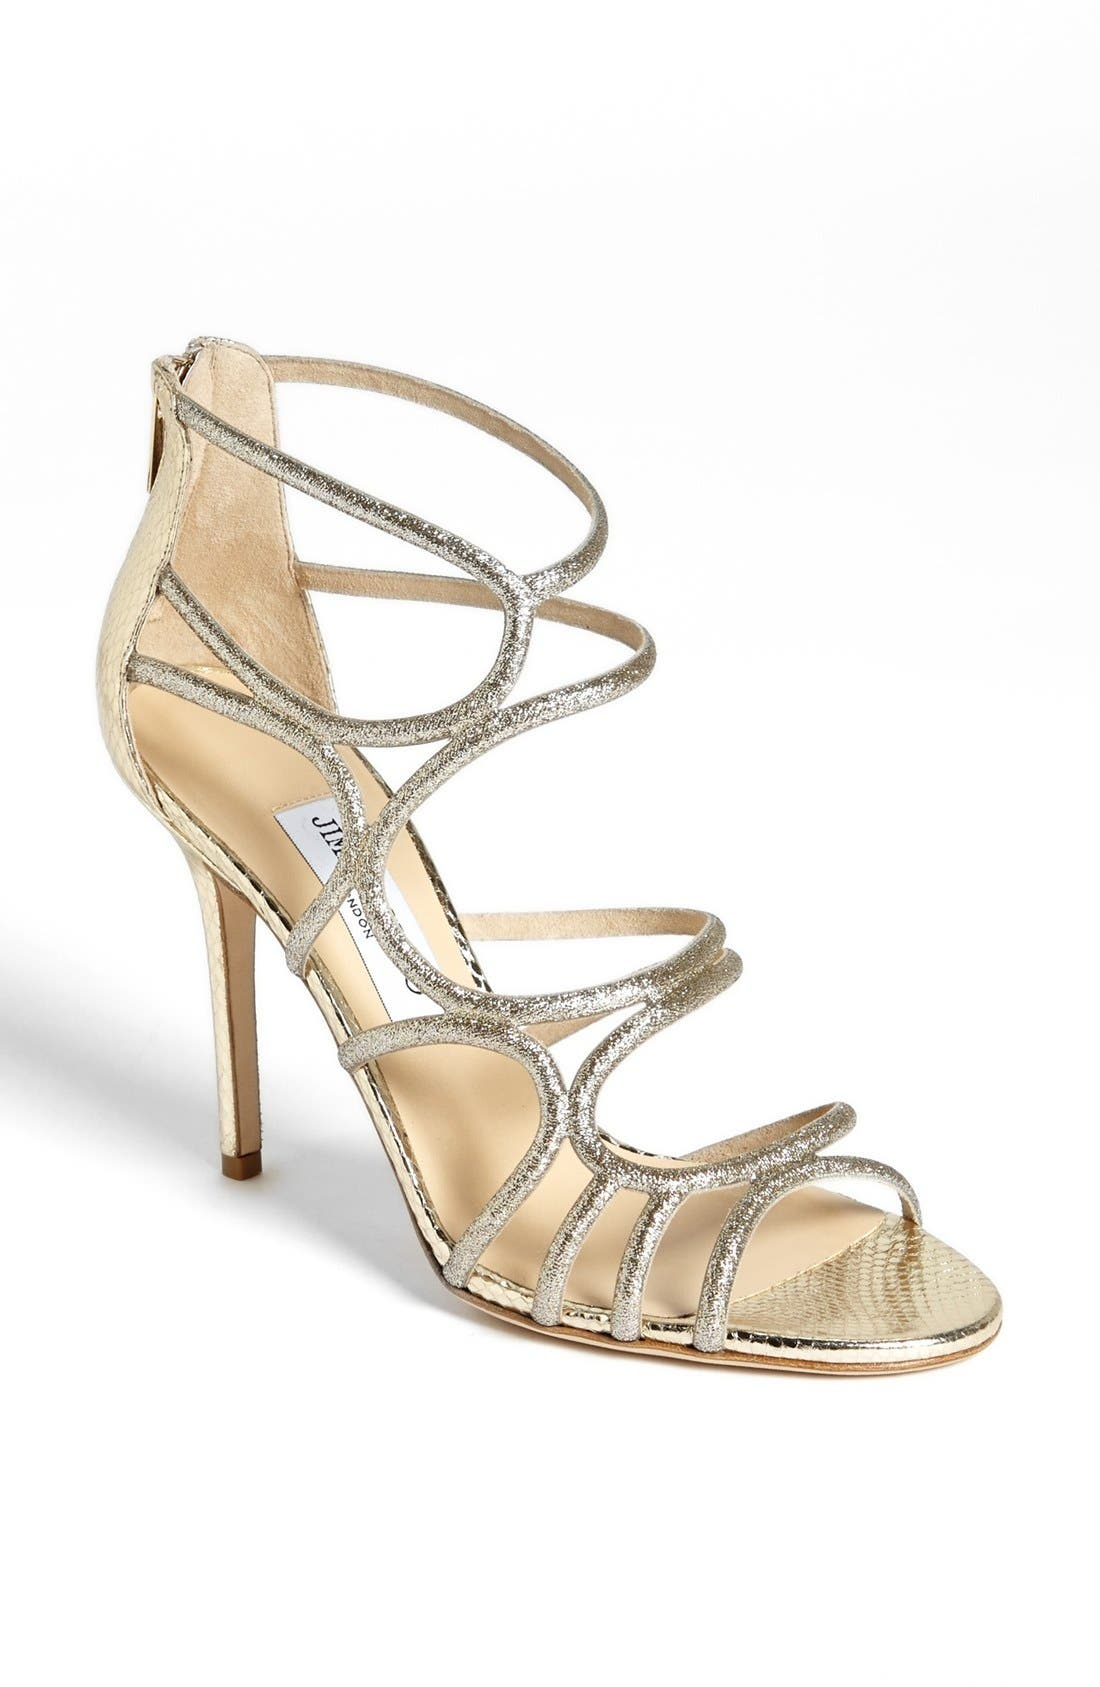 Alternate Image 1 Selected - Jimmy Choo 'Sazerac' Sandal